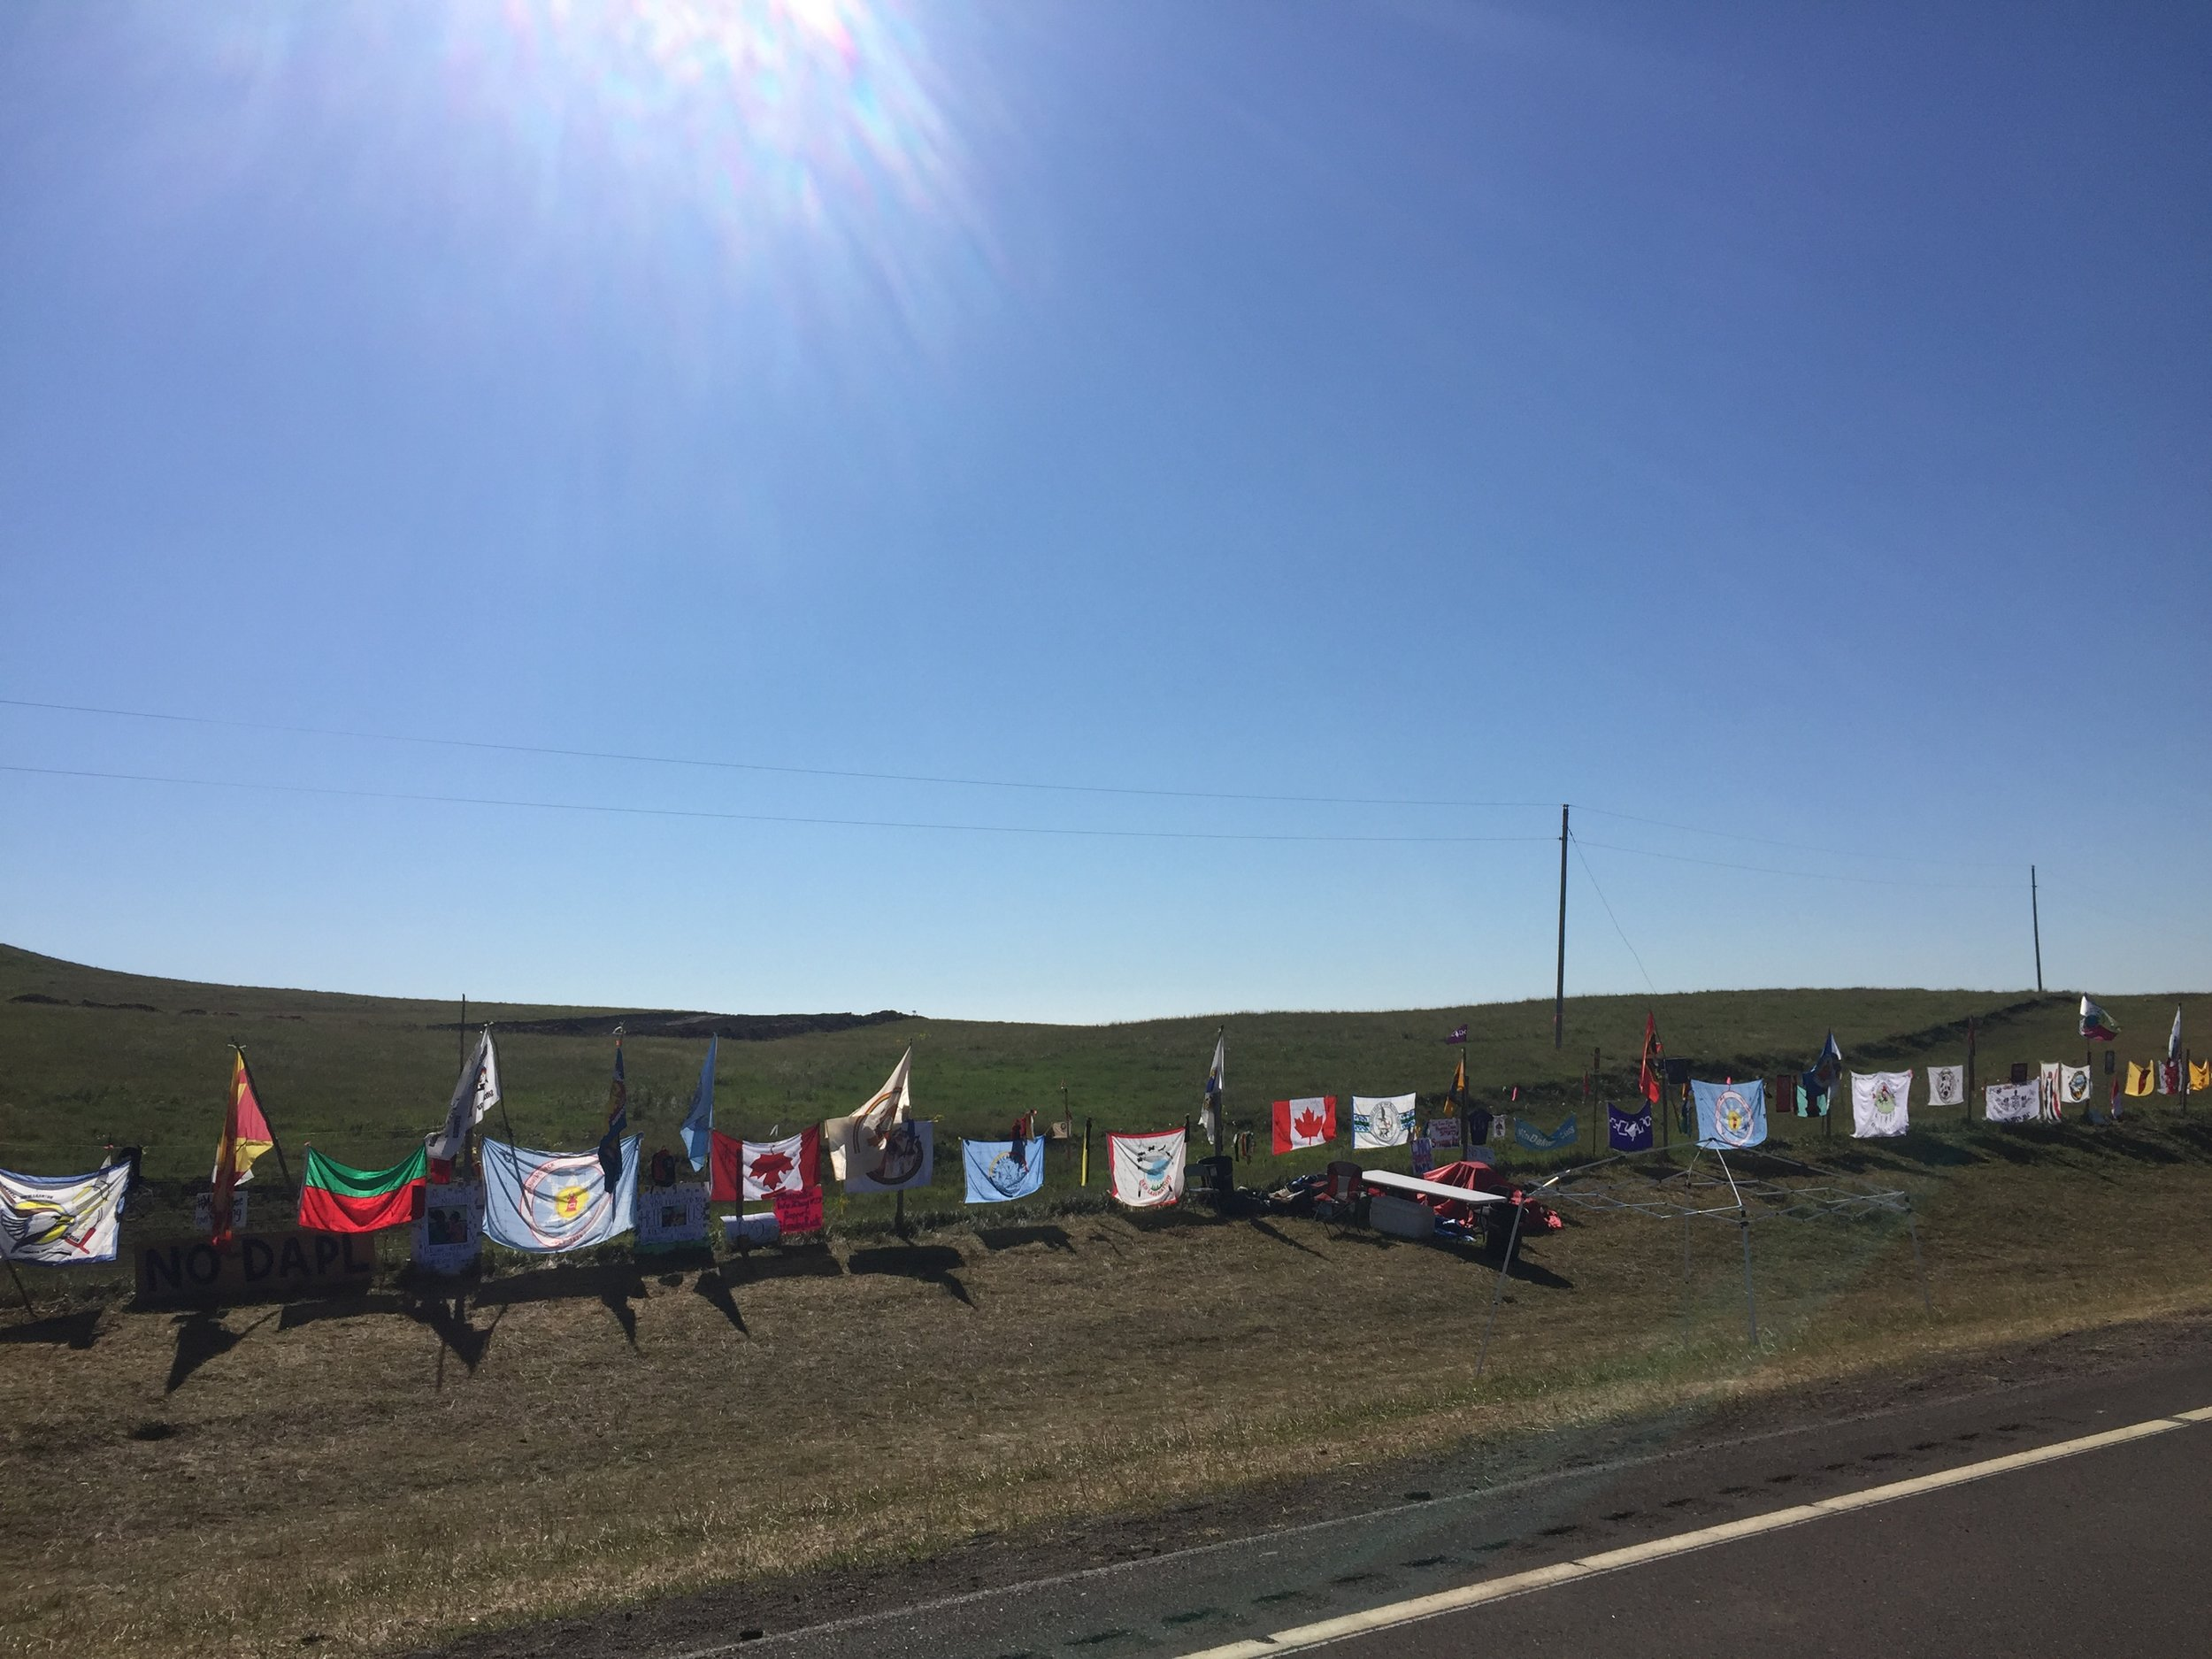 Flags from all nations represented at Standing Rock, North Dakota. Image capture: August 28th, 2016